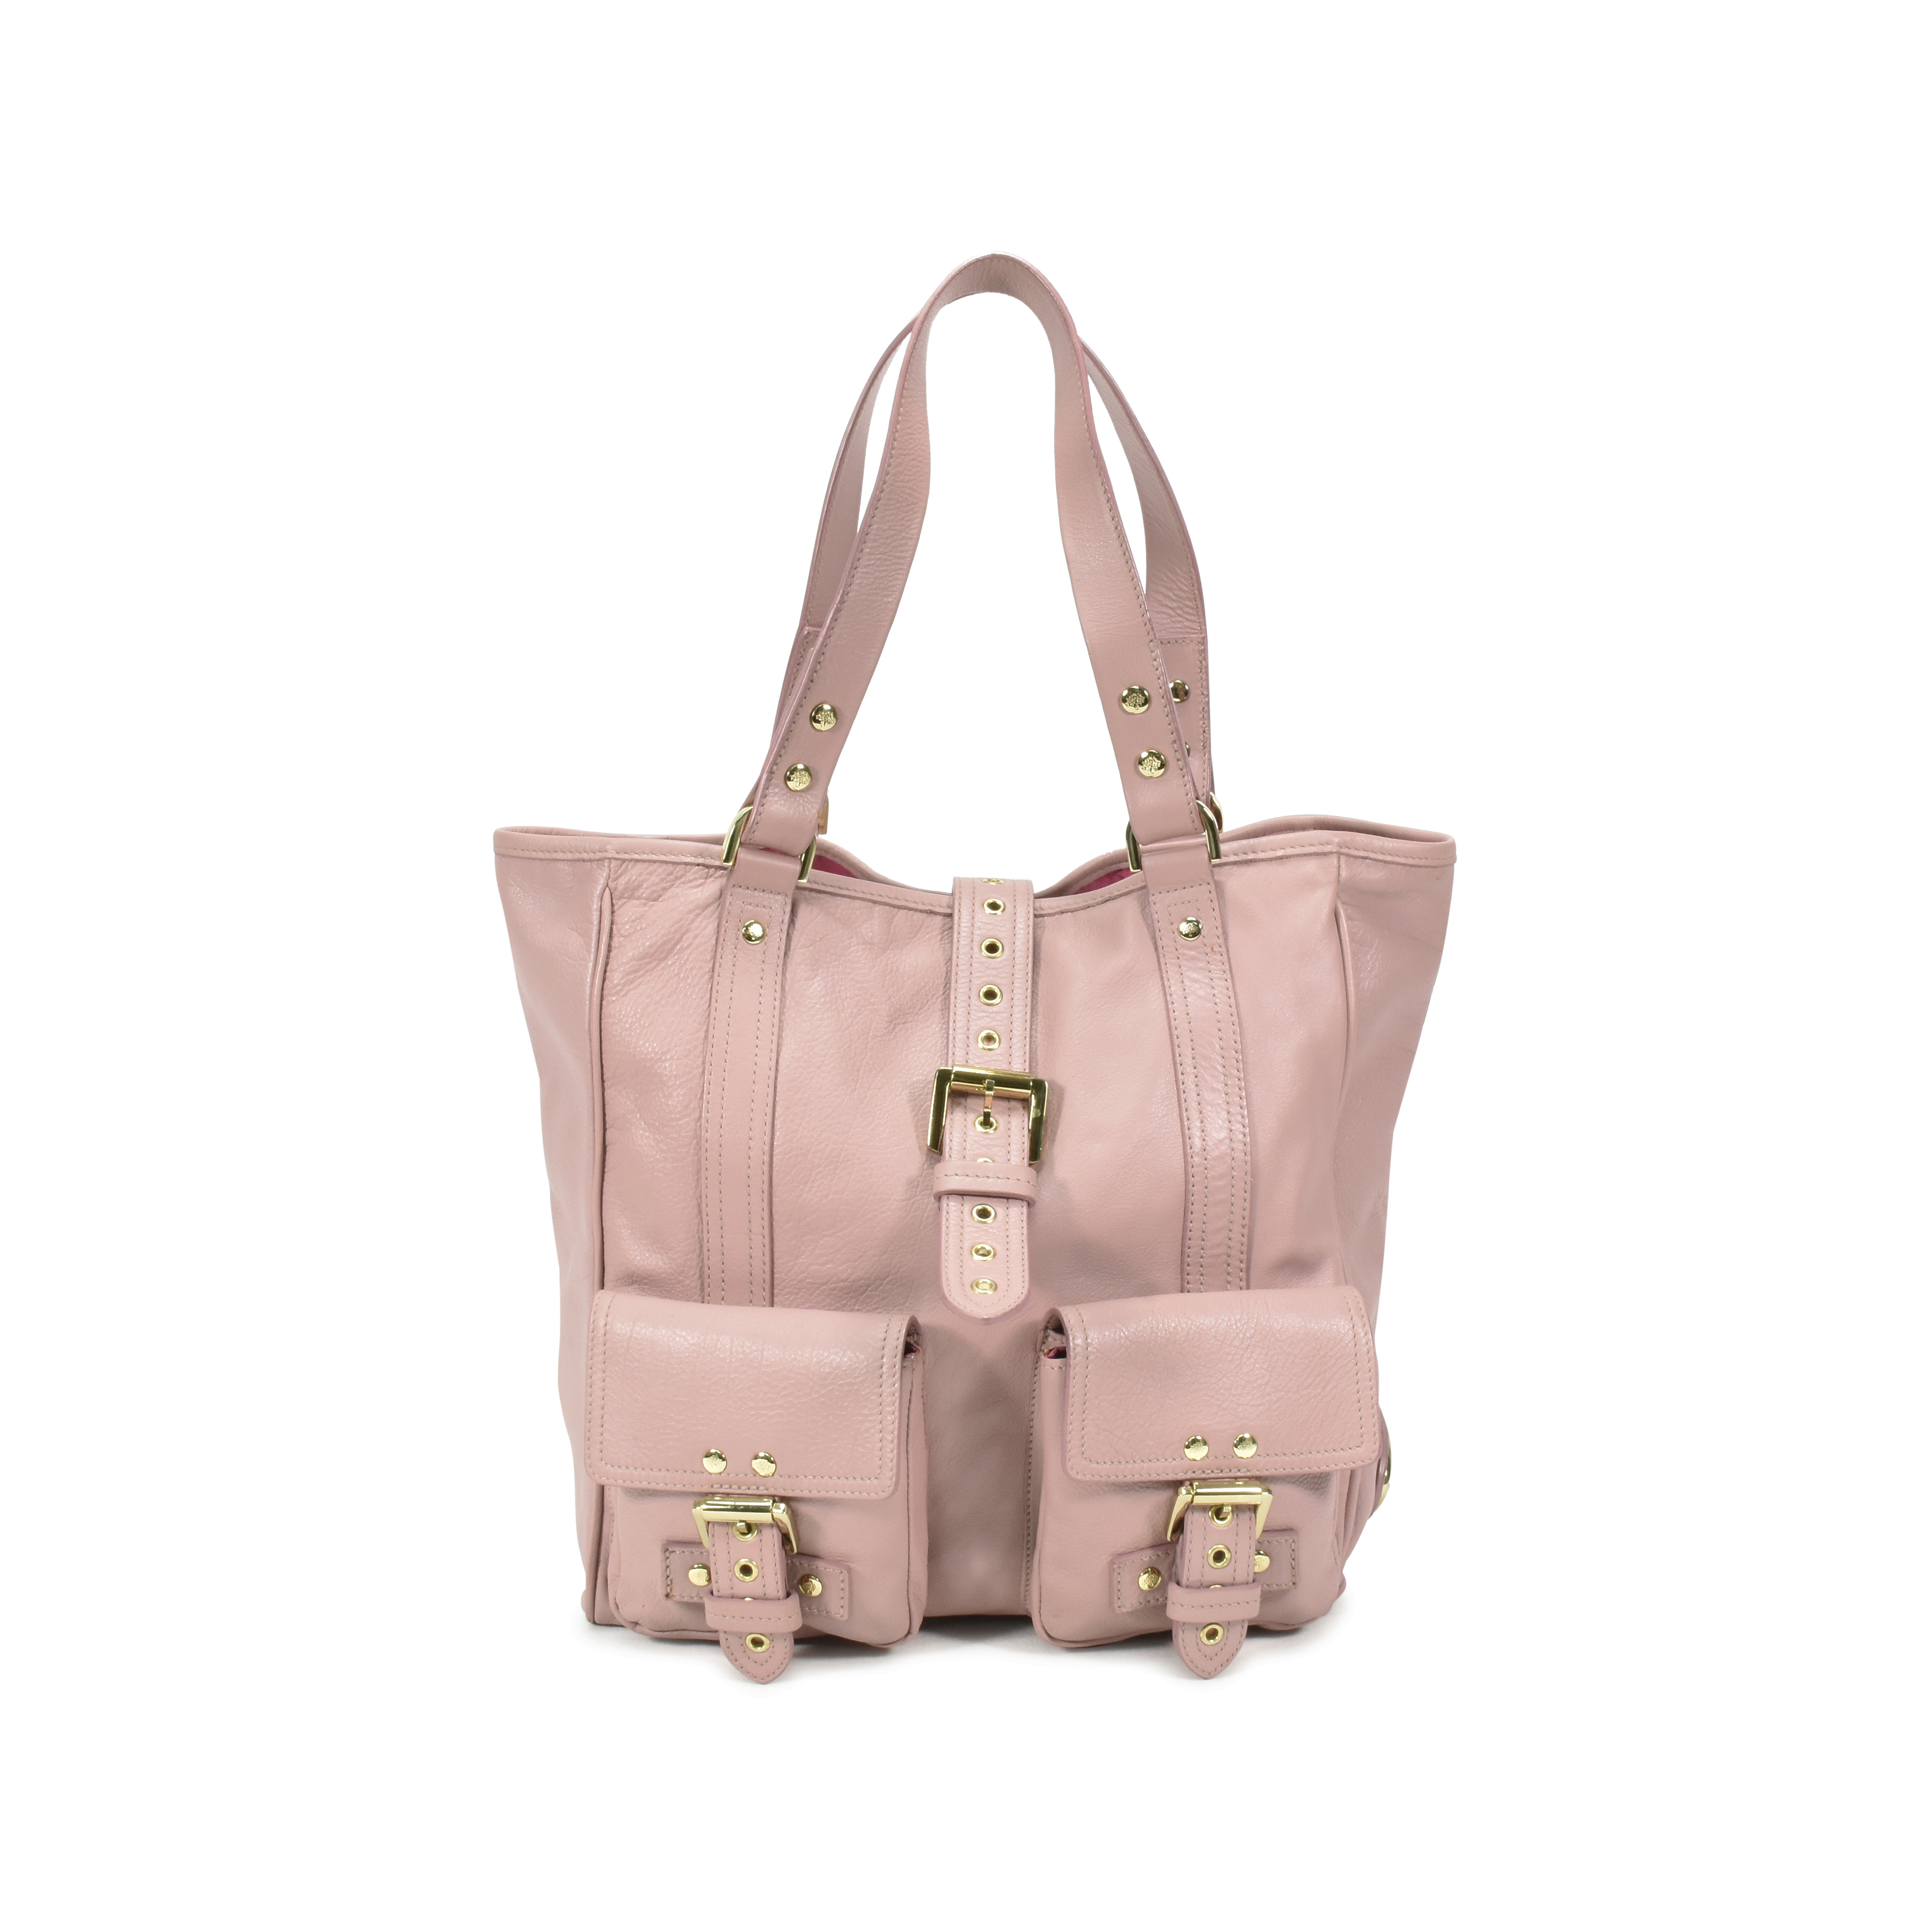 69c25e9978 Authentic Second Hand Mulberry Roxanne A4 Tote Bag (PSS-364-00001 ...